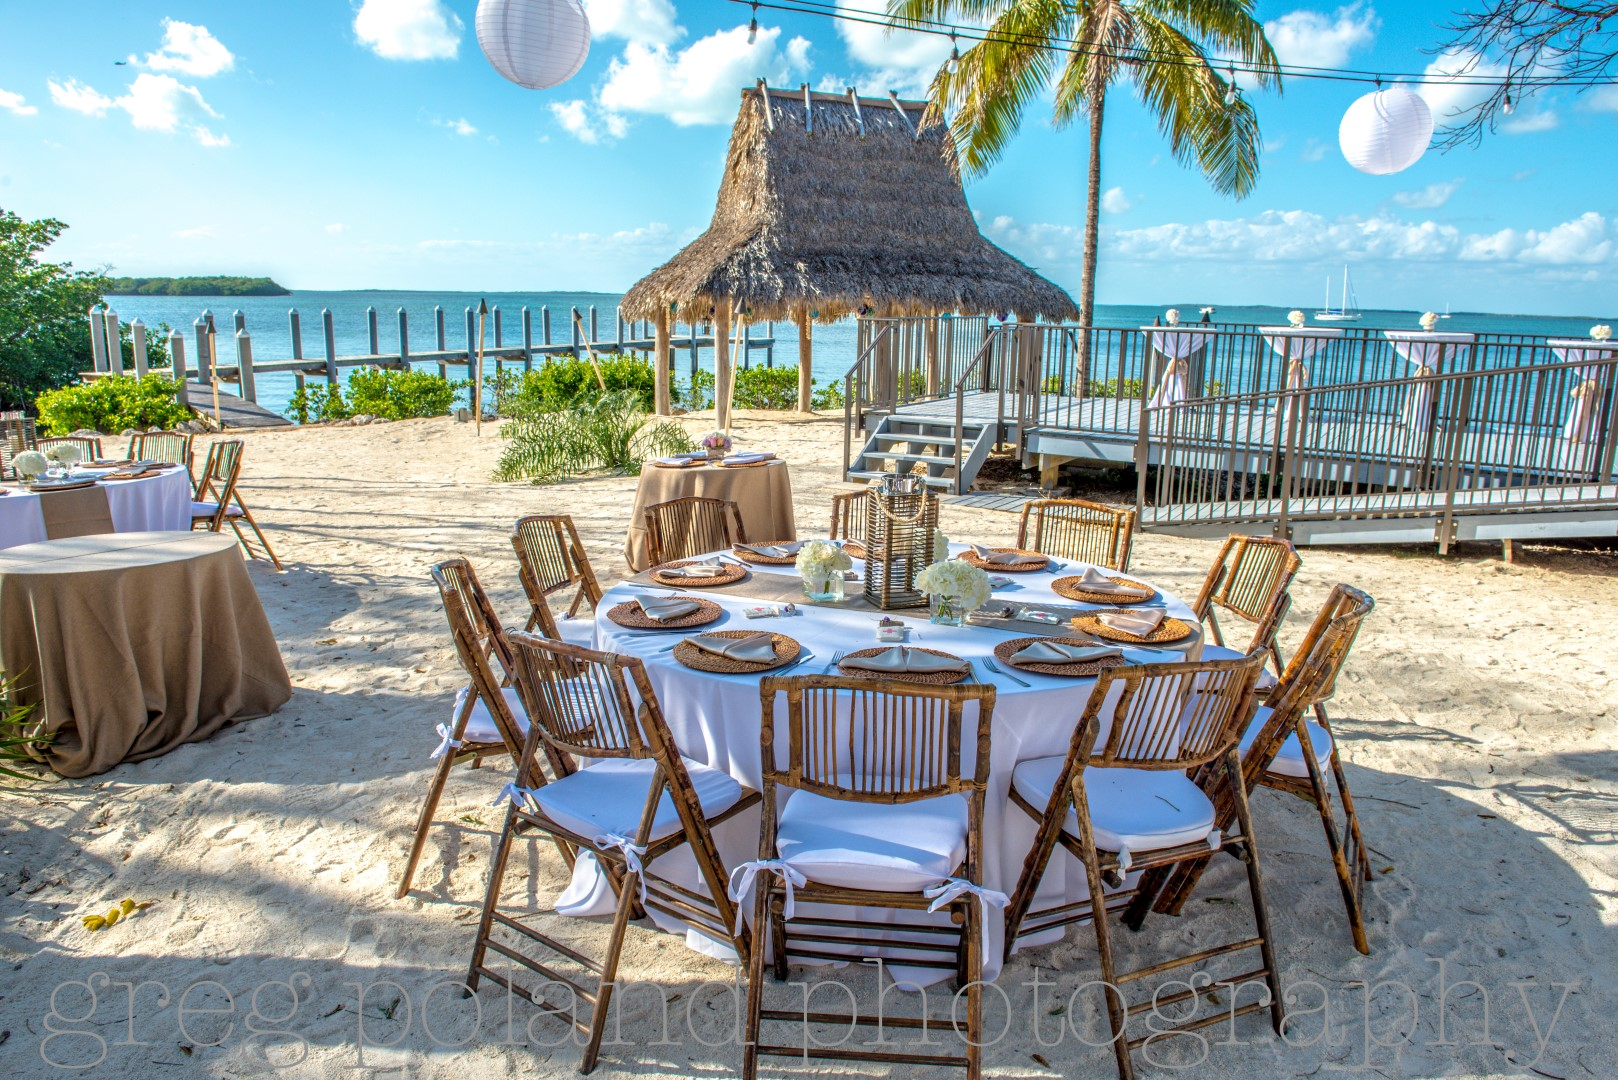 Key Largo Lighthouse Beach Weddings Image 13